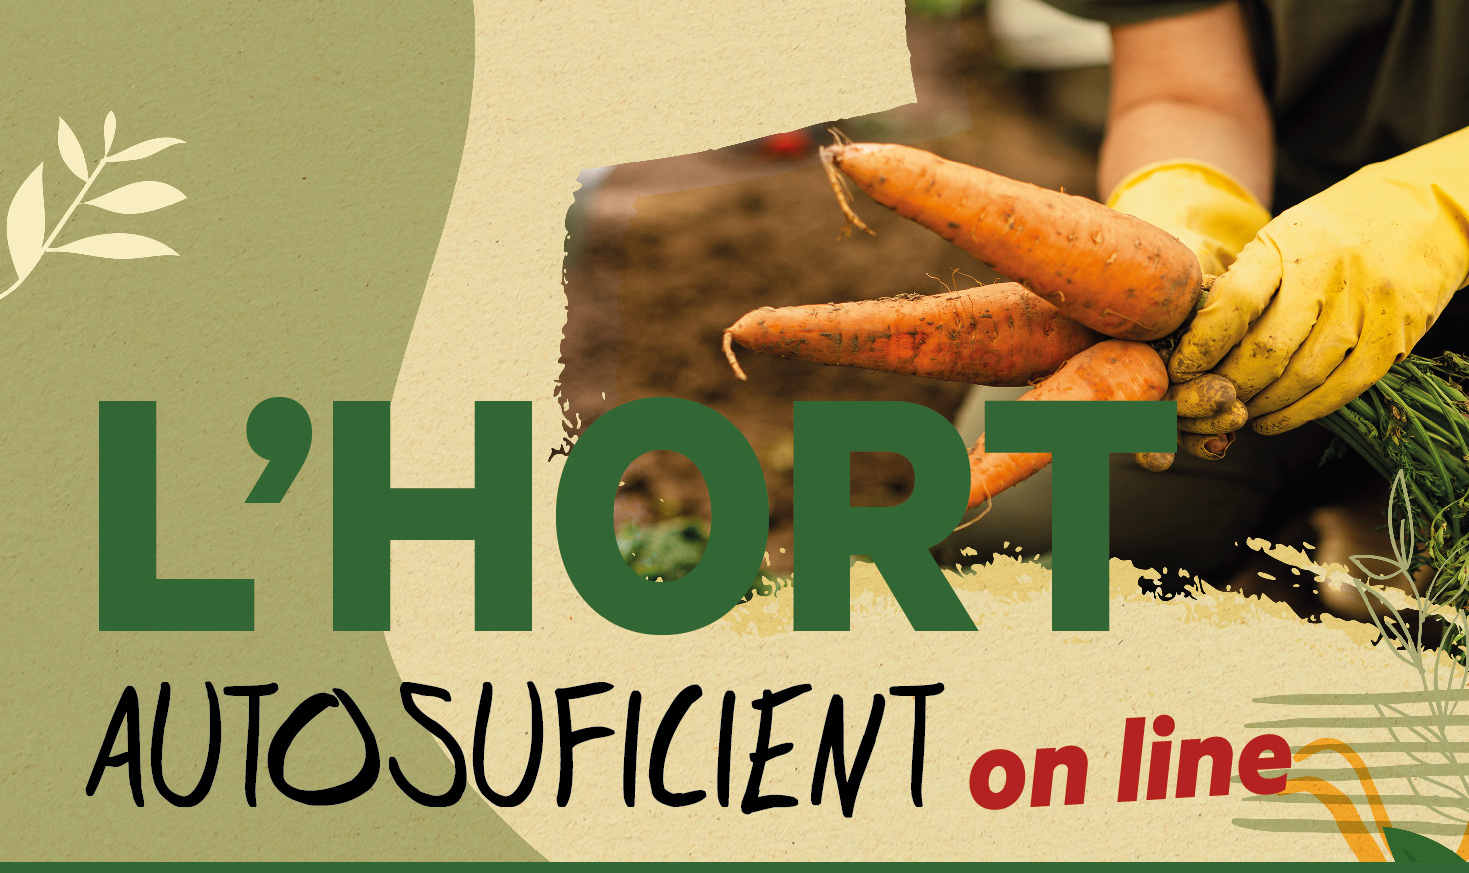 L'hort autosuficient on line